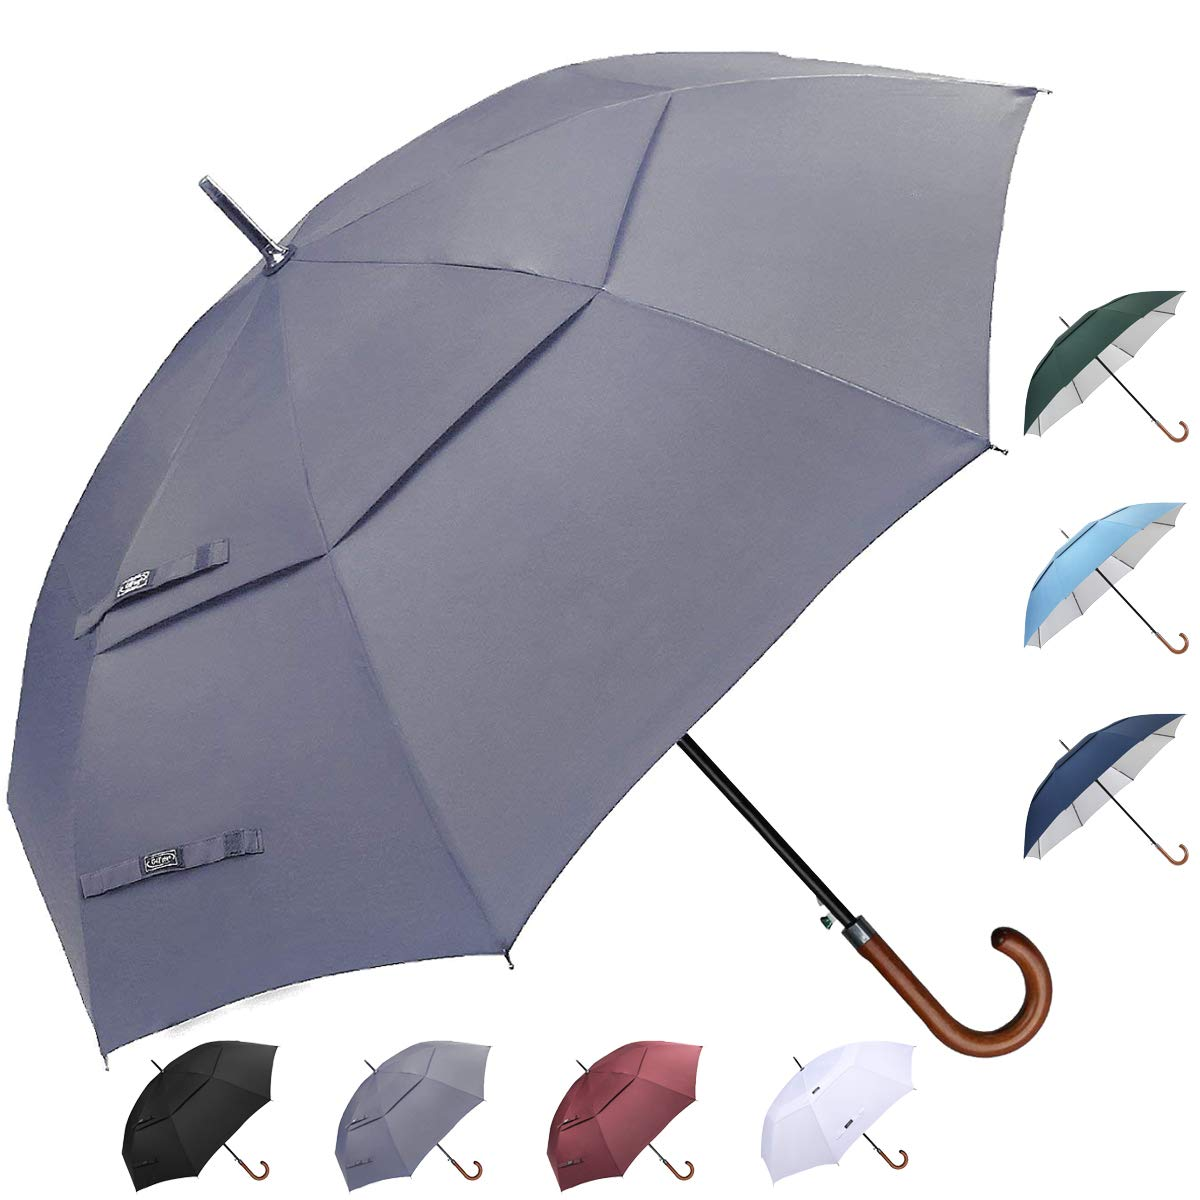 G4Free Wooden Hook Handle Classic Golf Umbrella Windproof Auto Open 62 inch Large Oversized Double Canopy Vented Rainproof Cane Stick Umbrellas Men Women(Gray) by G4Free